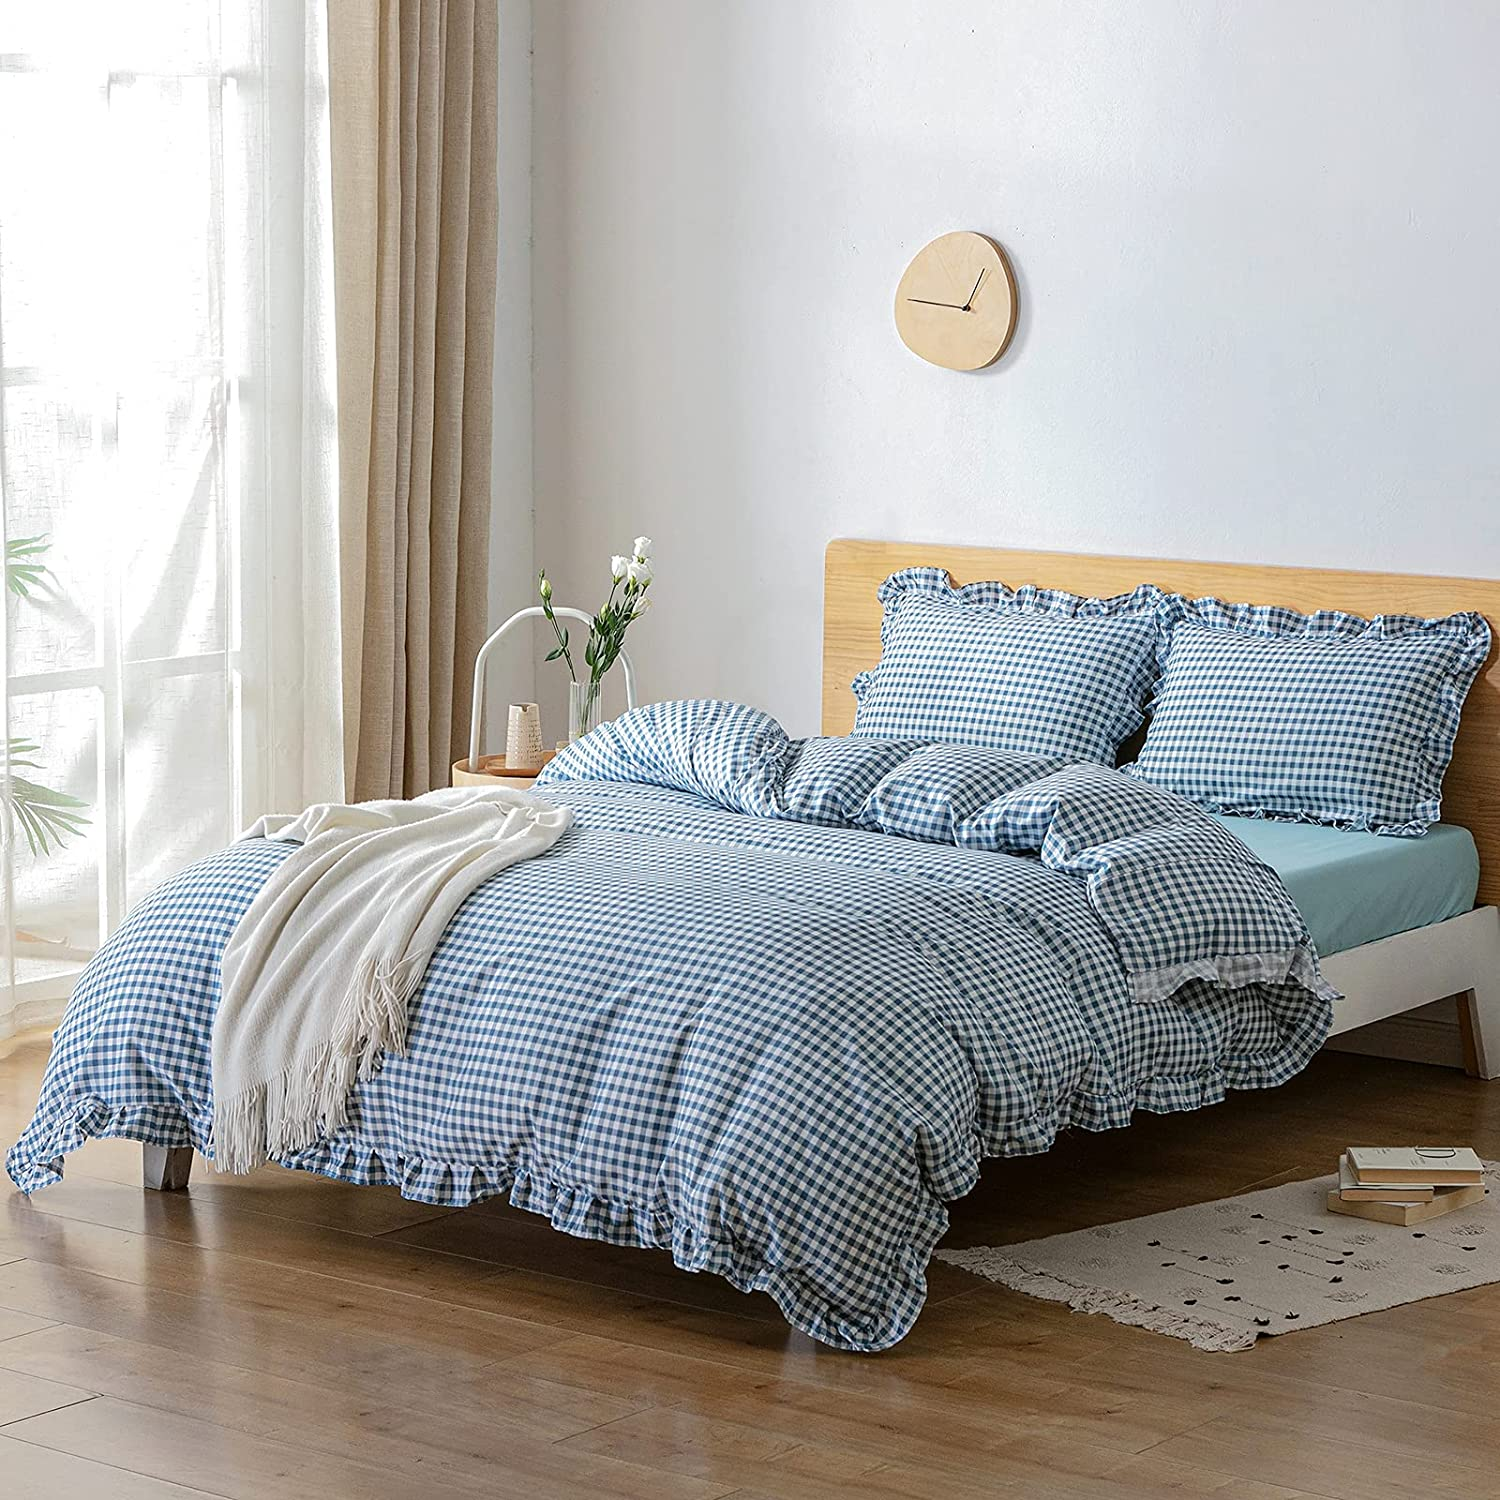 OFFicial site Argstar 3 Pcs Blue and White Plaid Reservation Duvet Ruffled Cover King Size